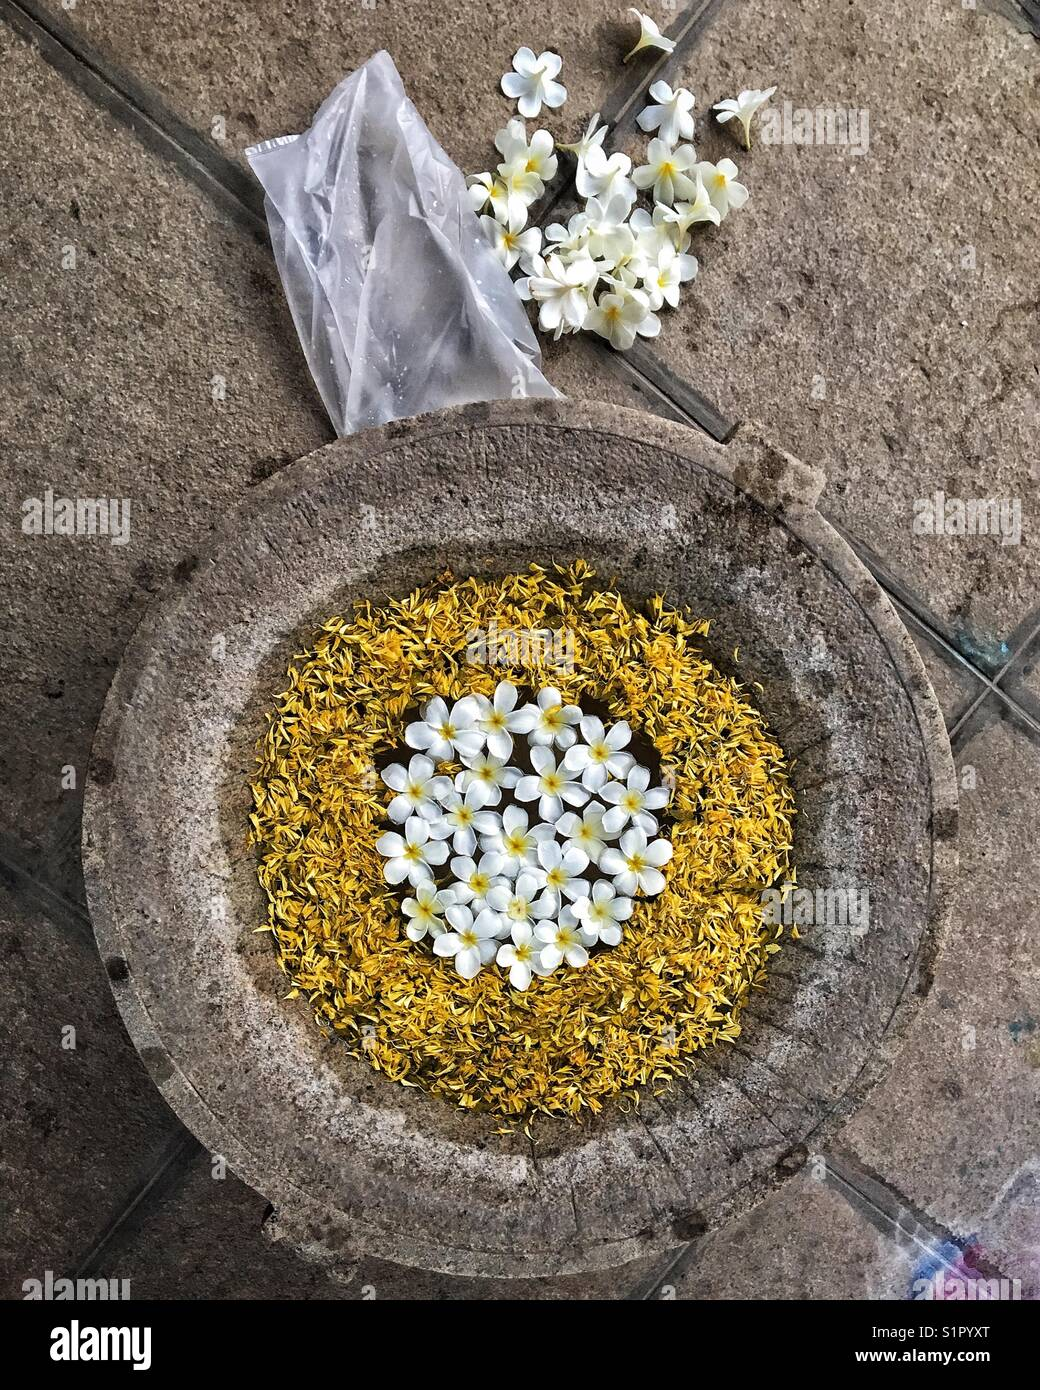 Flowers for an auspicious and fresh start! - Stock Image